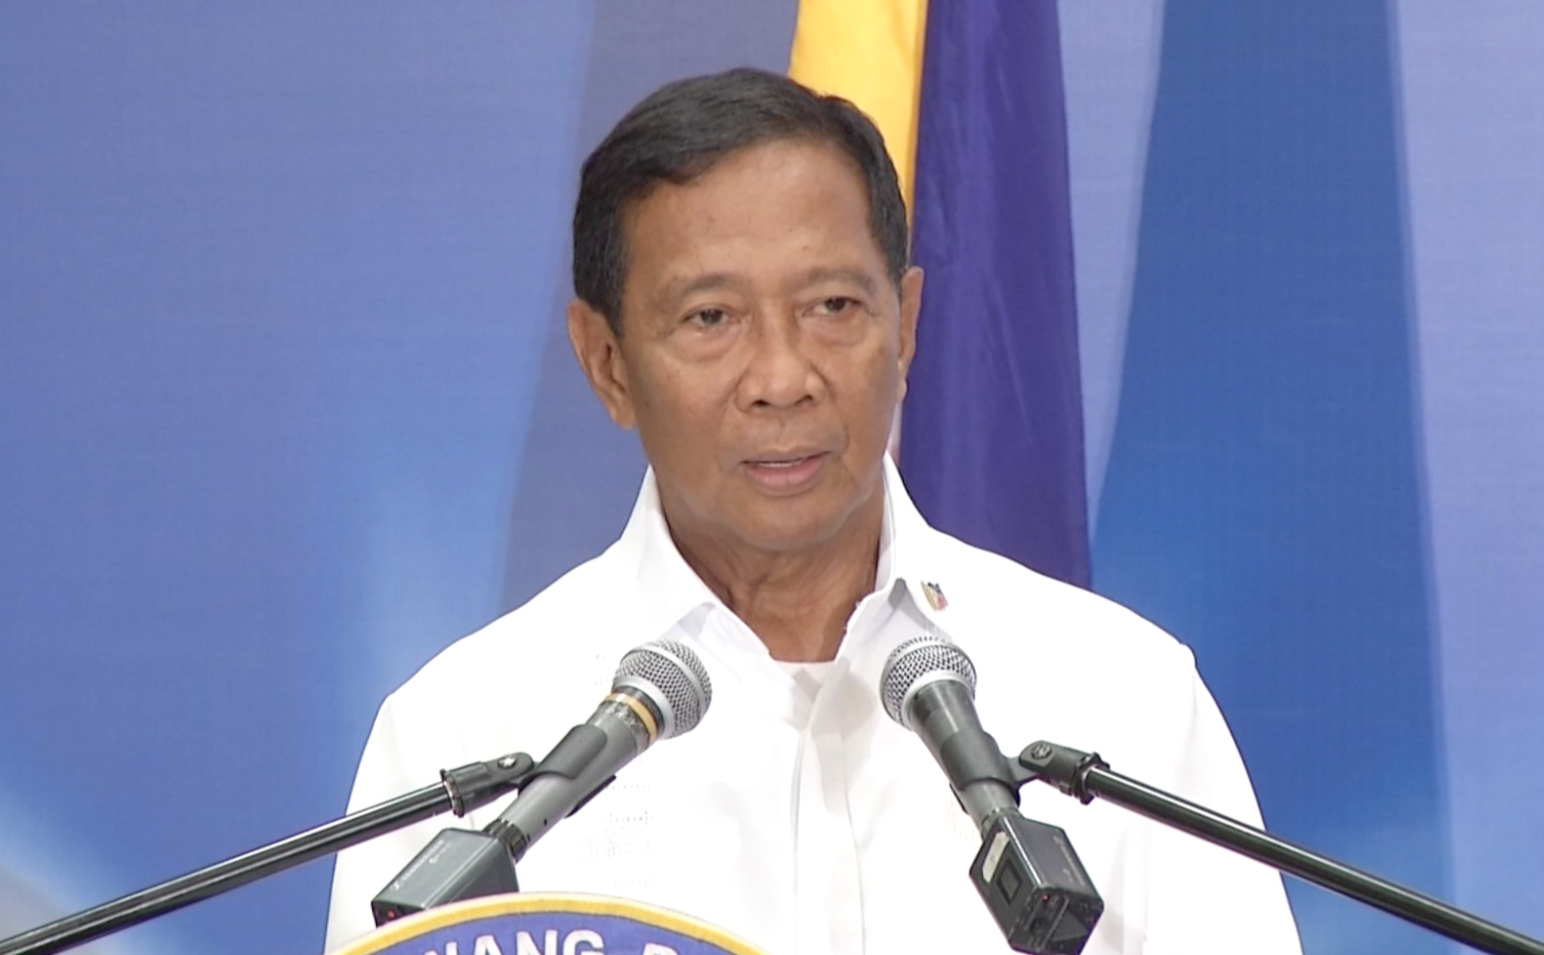 Former VP Binay to seek seat in House in 2019 — report